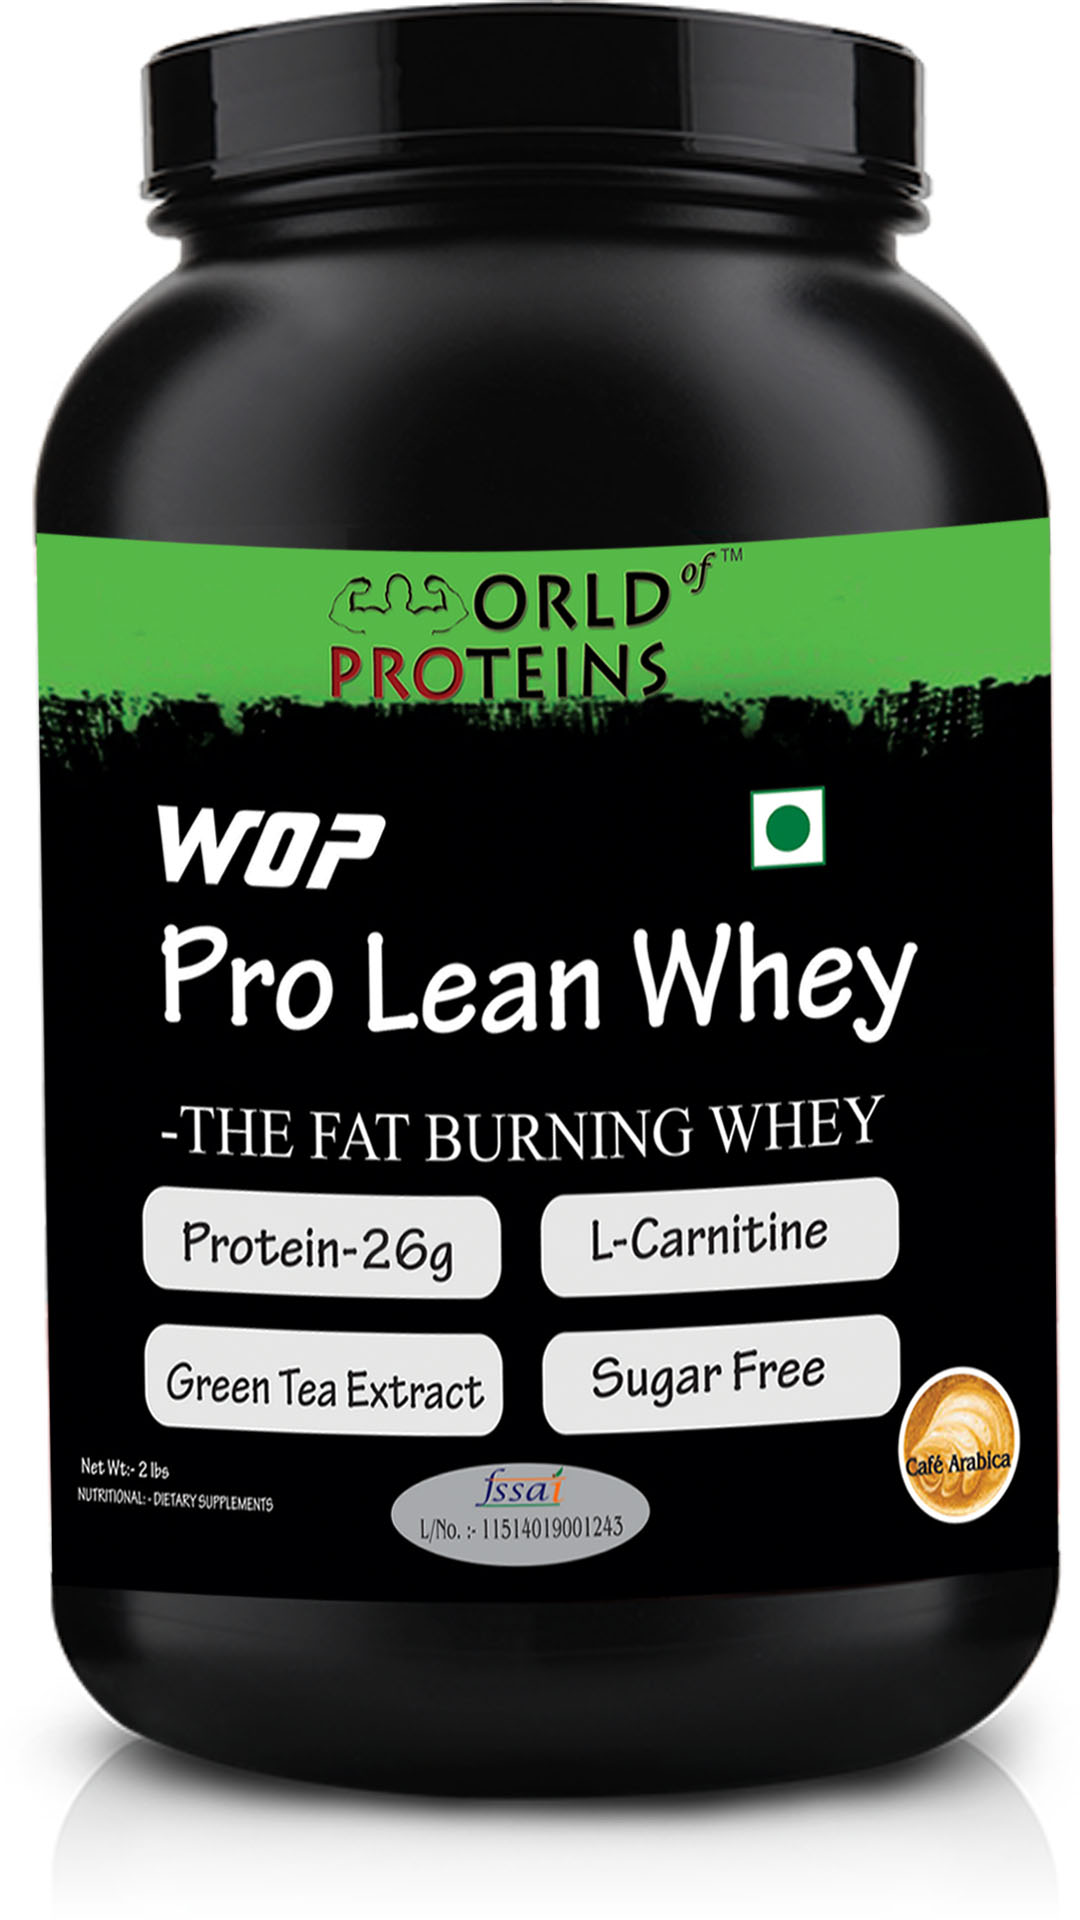 size_122948_Pro_Lean_Whey_2_Lbs_Cafe_Arabica_copy.jpg